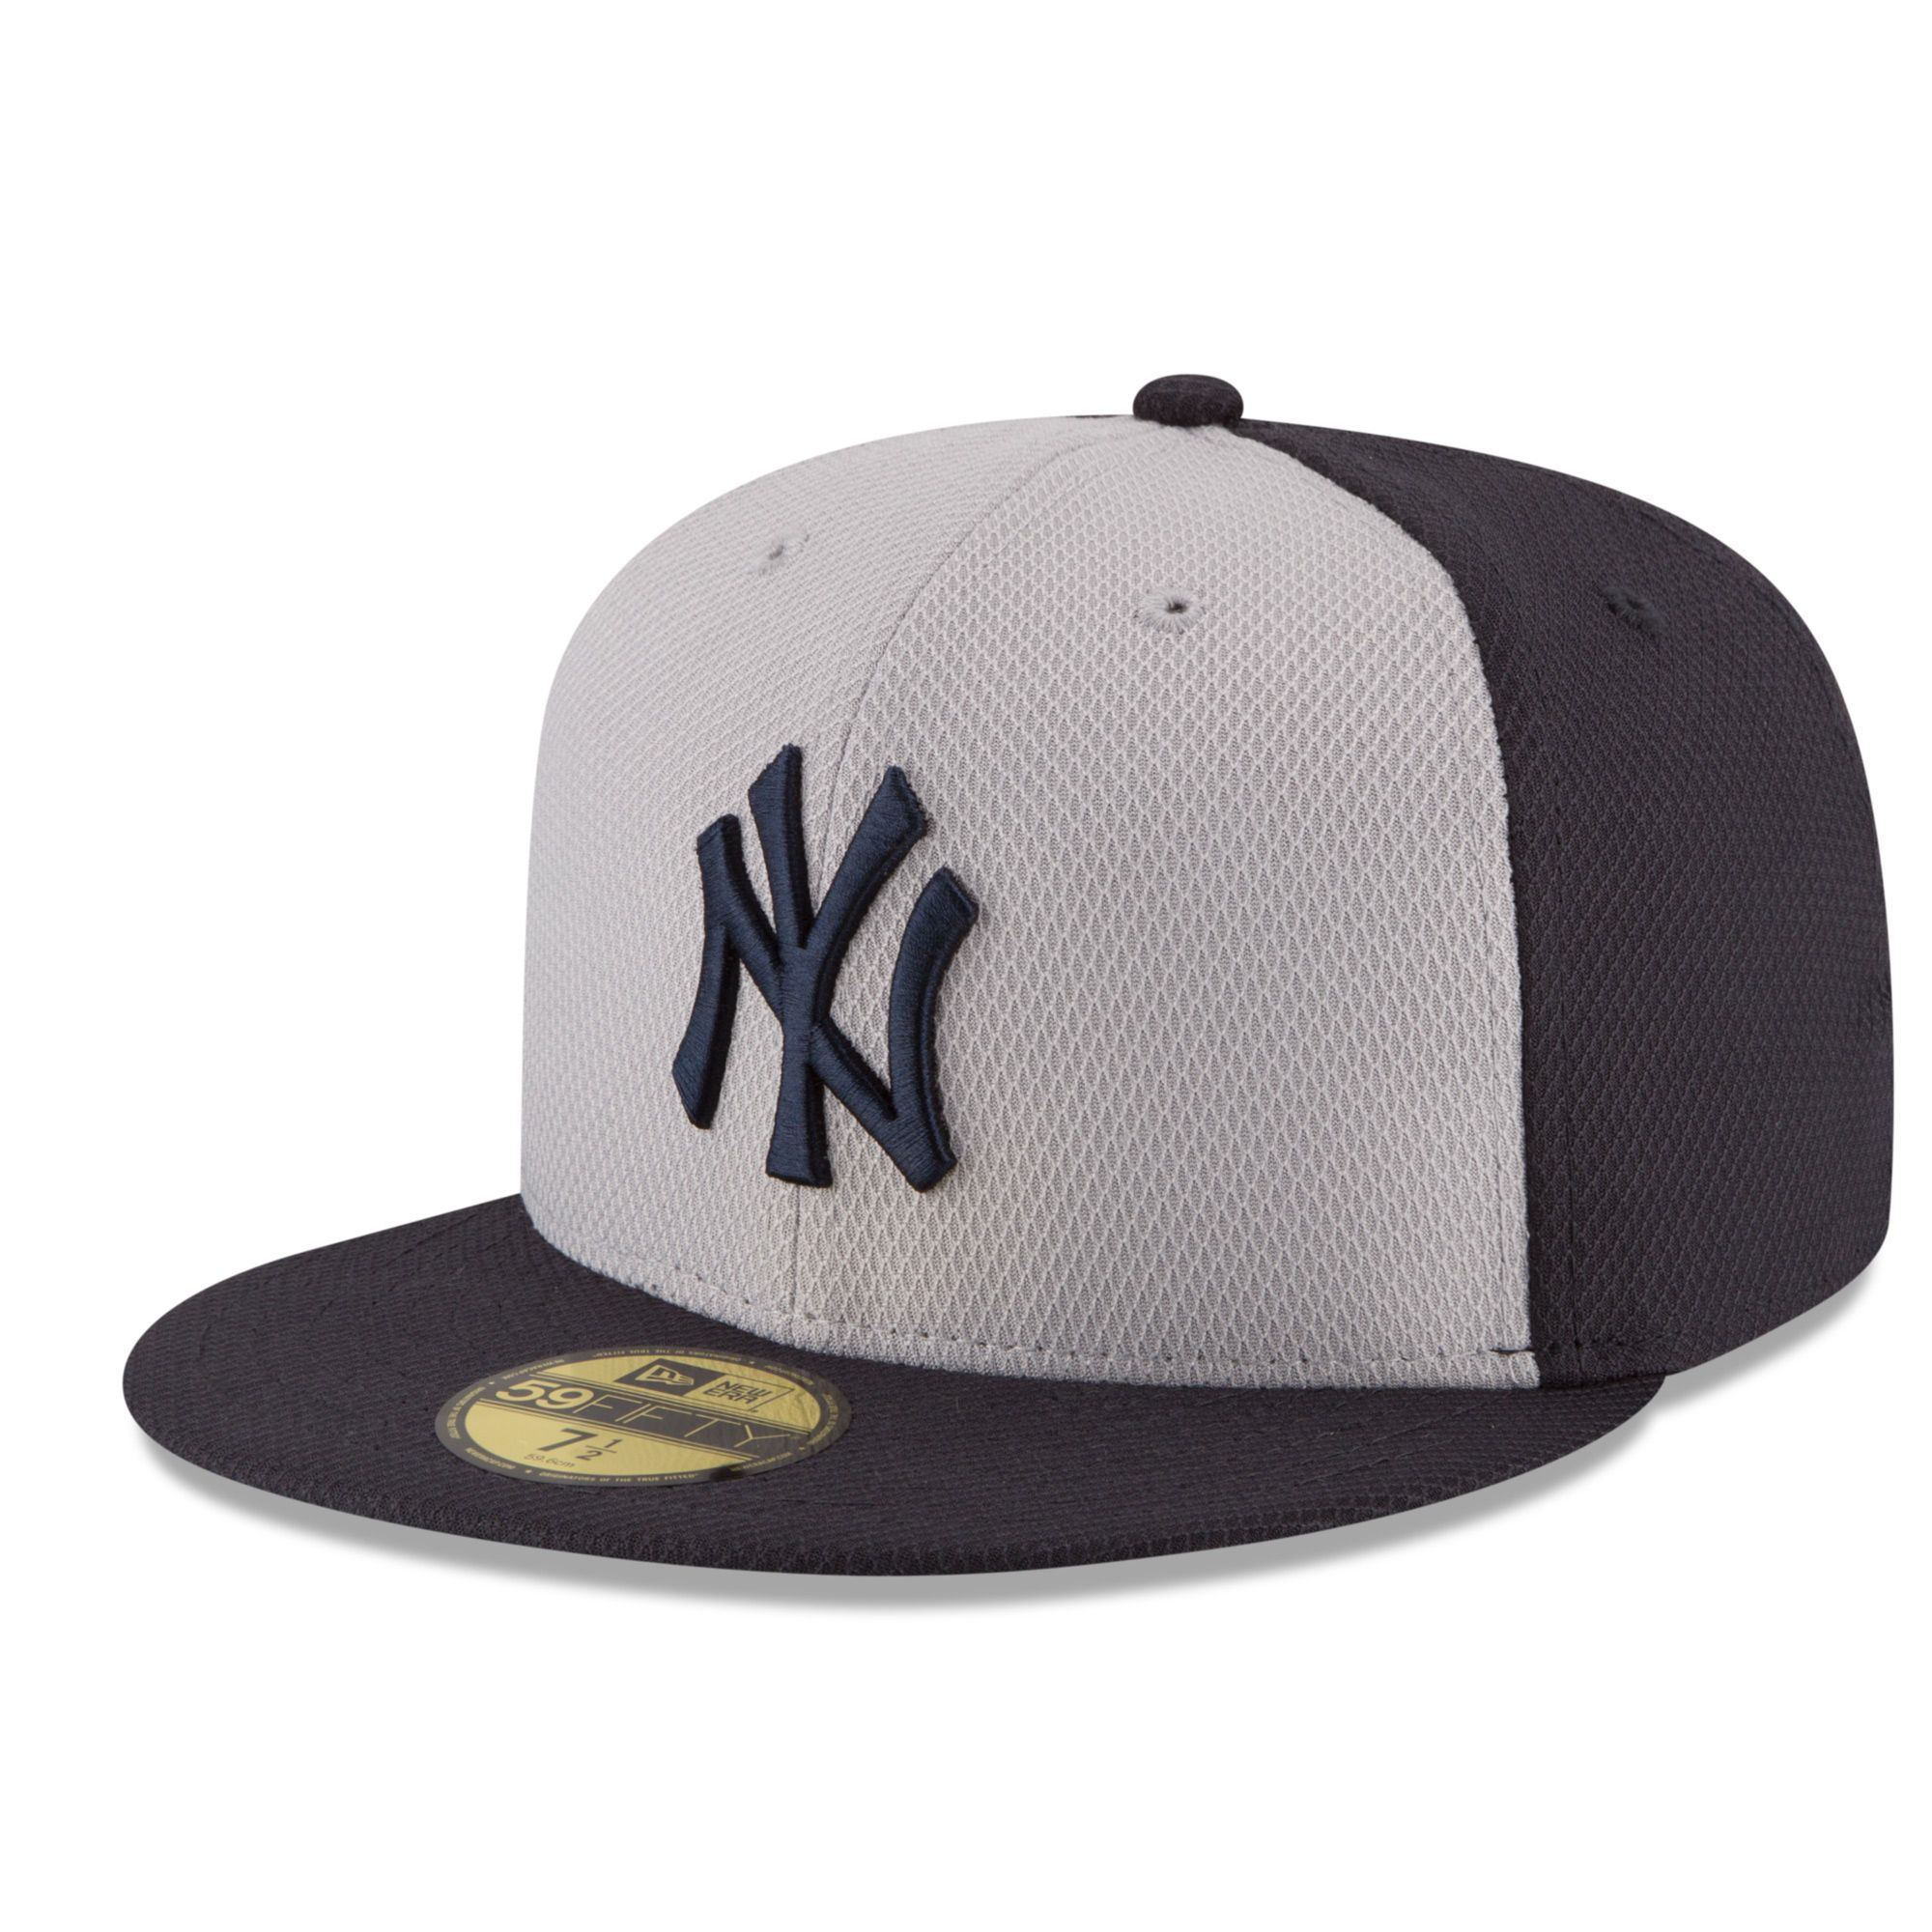 New York Yankees New Era Road Diamond Era 59fifty Fitted Hat Navy Gray Fitted Hats Hats Yankees Hat